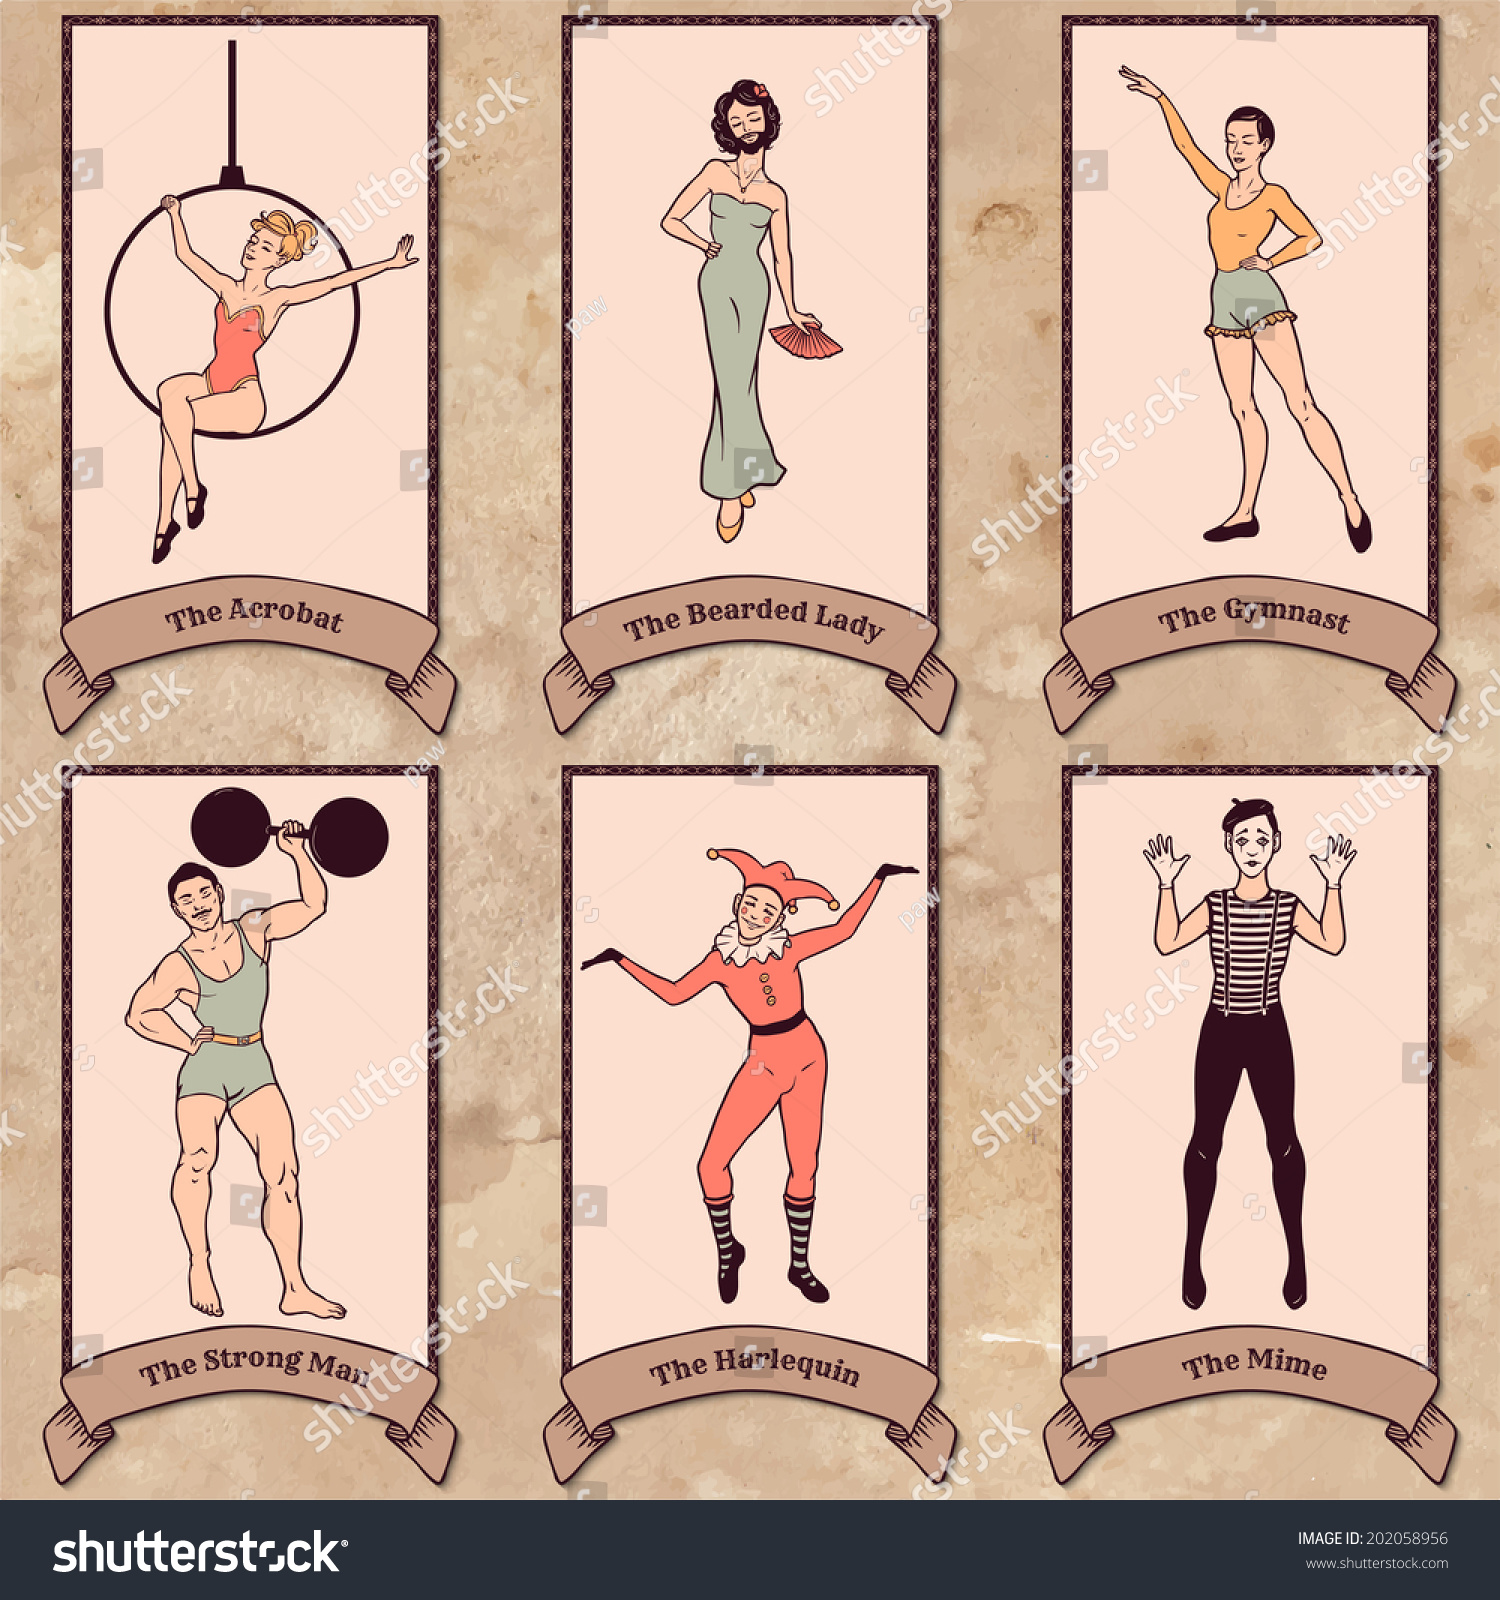 Vintage circus characters set: acrobat, the bearded lady, gymnast, strong  man,